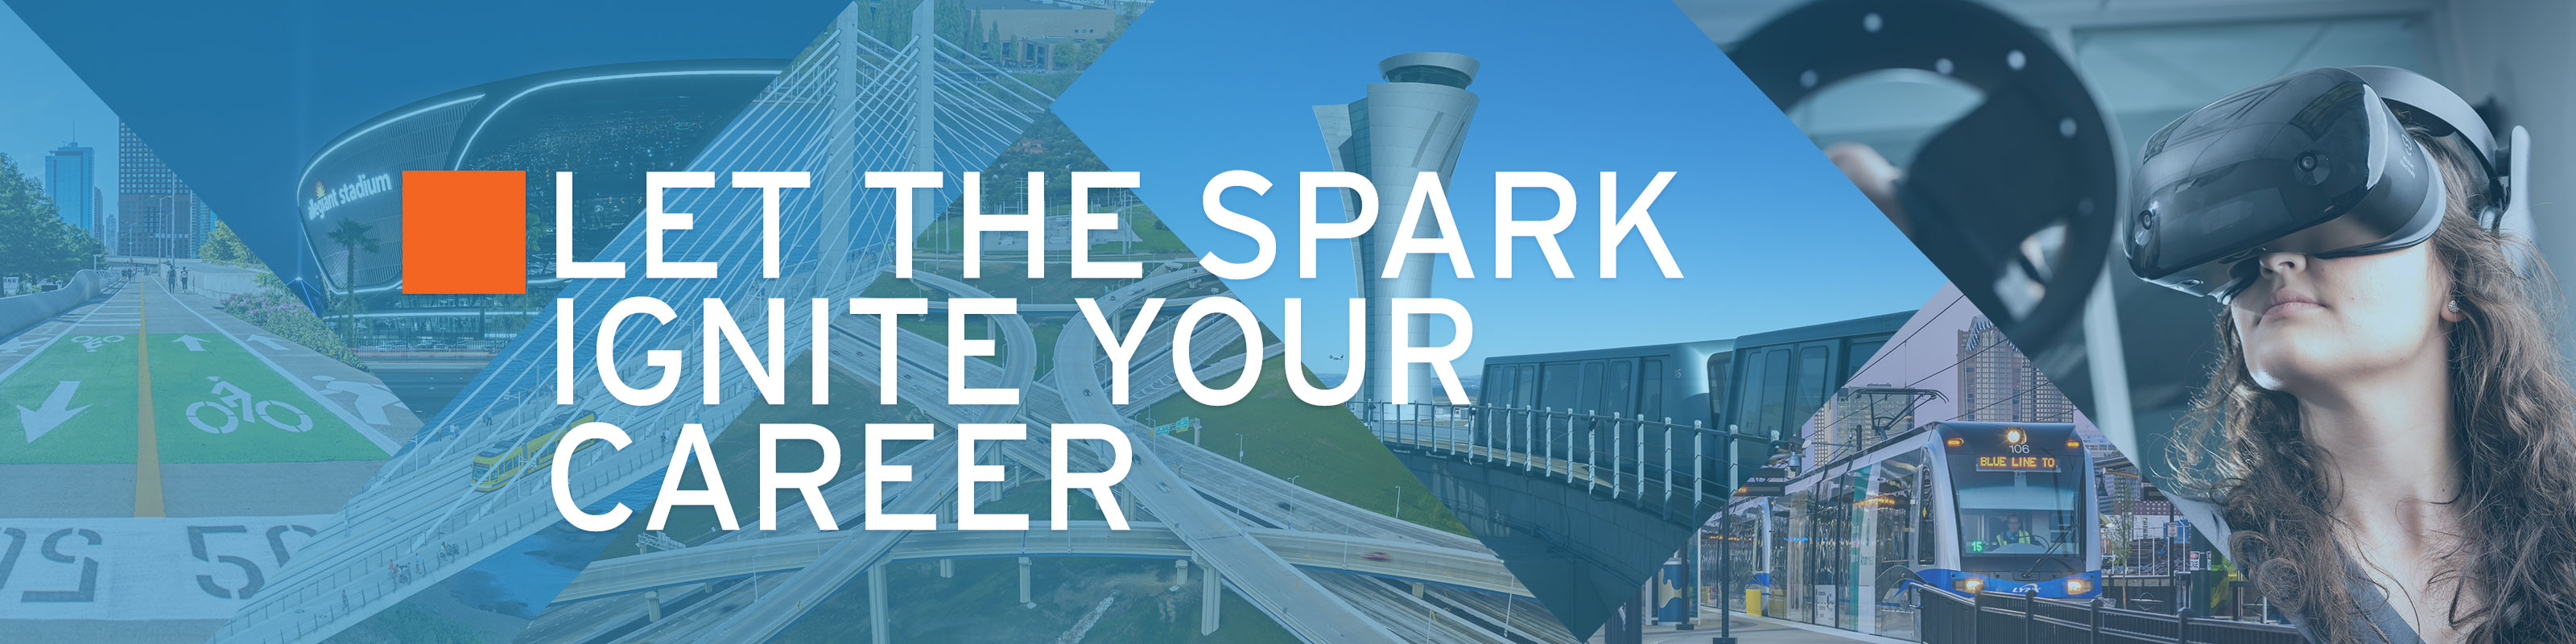 Let the spark ignite your career.